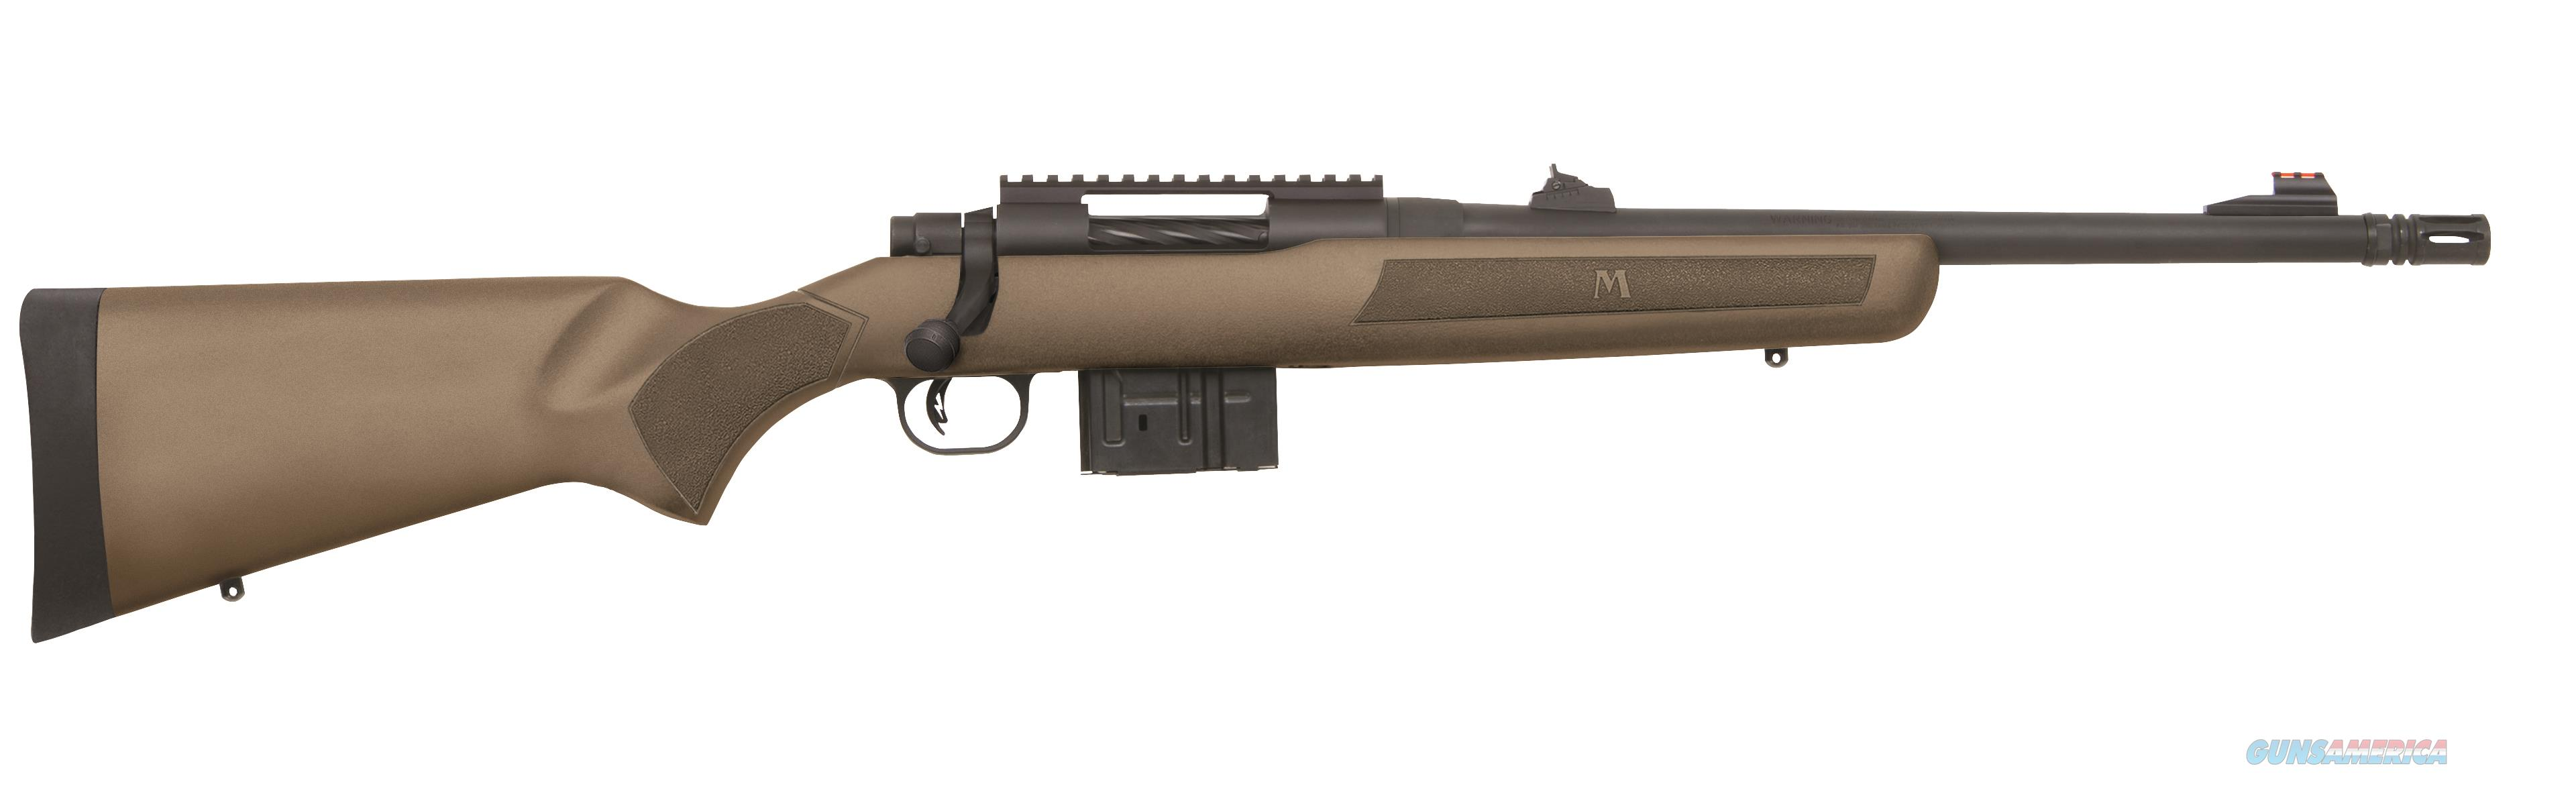 "Mossberg MVP Patrol Rifle TAN 308 WIN 16.25"" 27742  Guns > Rifles > Mossberg Rifles > MVP"